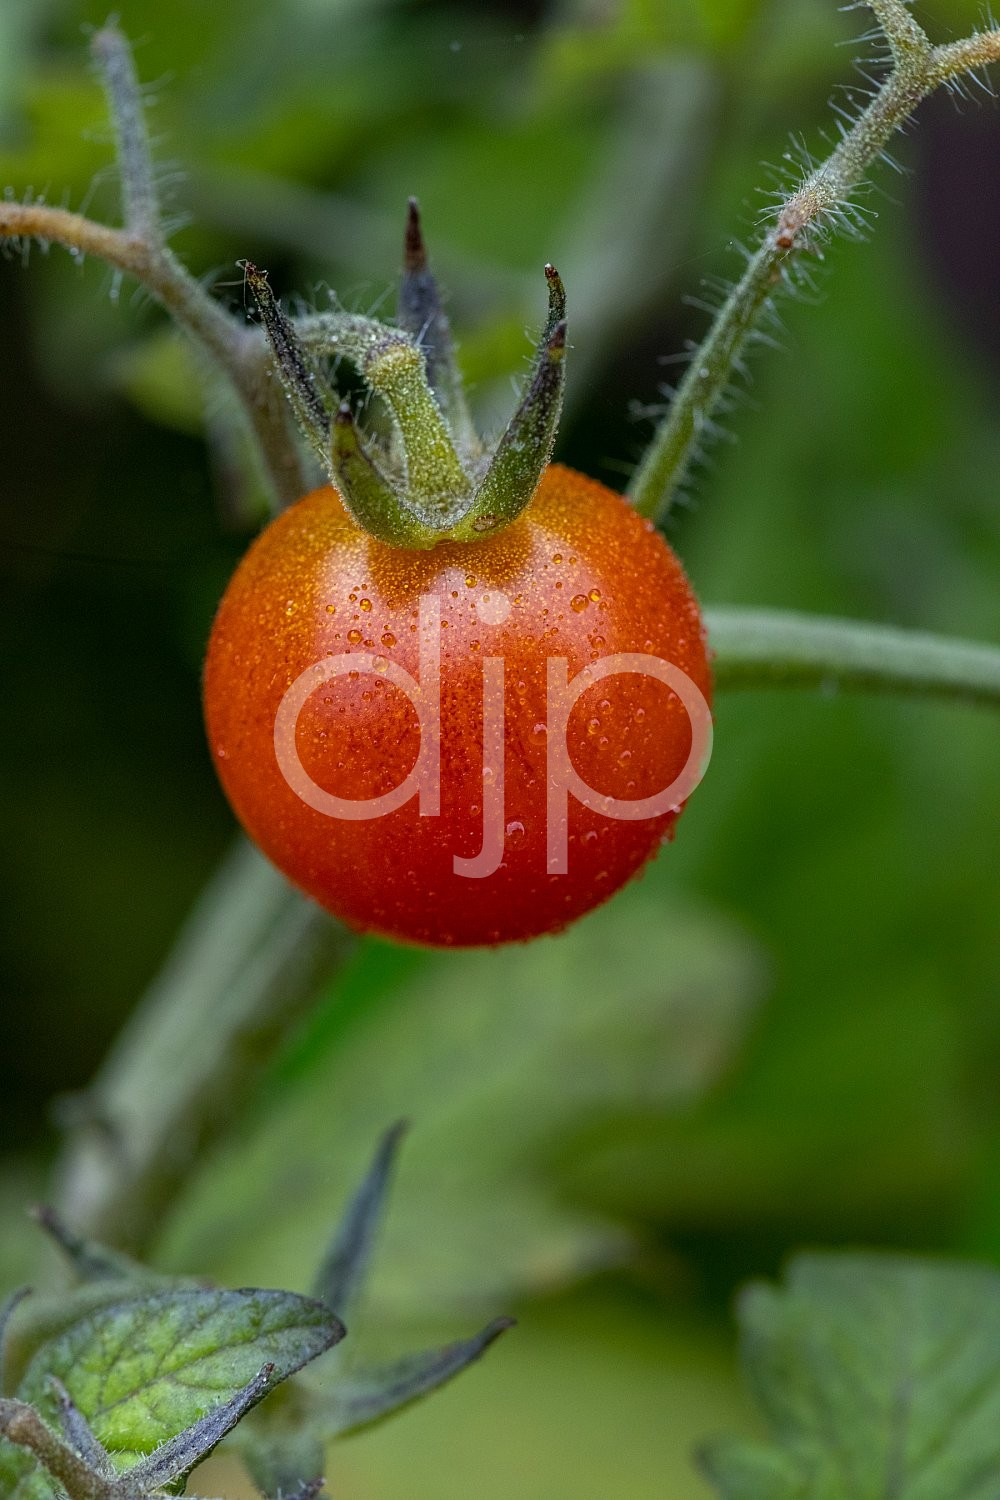 Sugar Land, djonesphoto, excursions with djp, macro, personal, quarantine, tomatoes, D Jones Photography